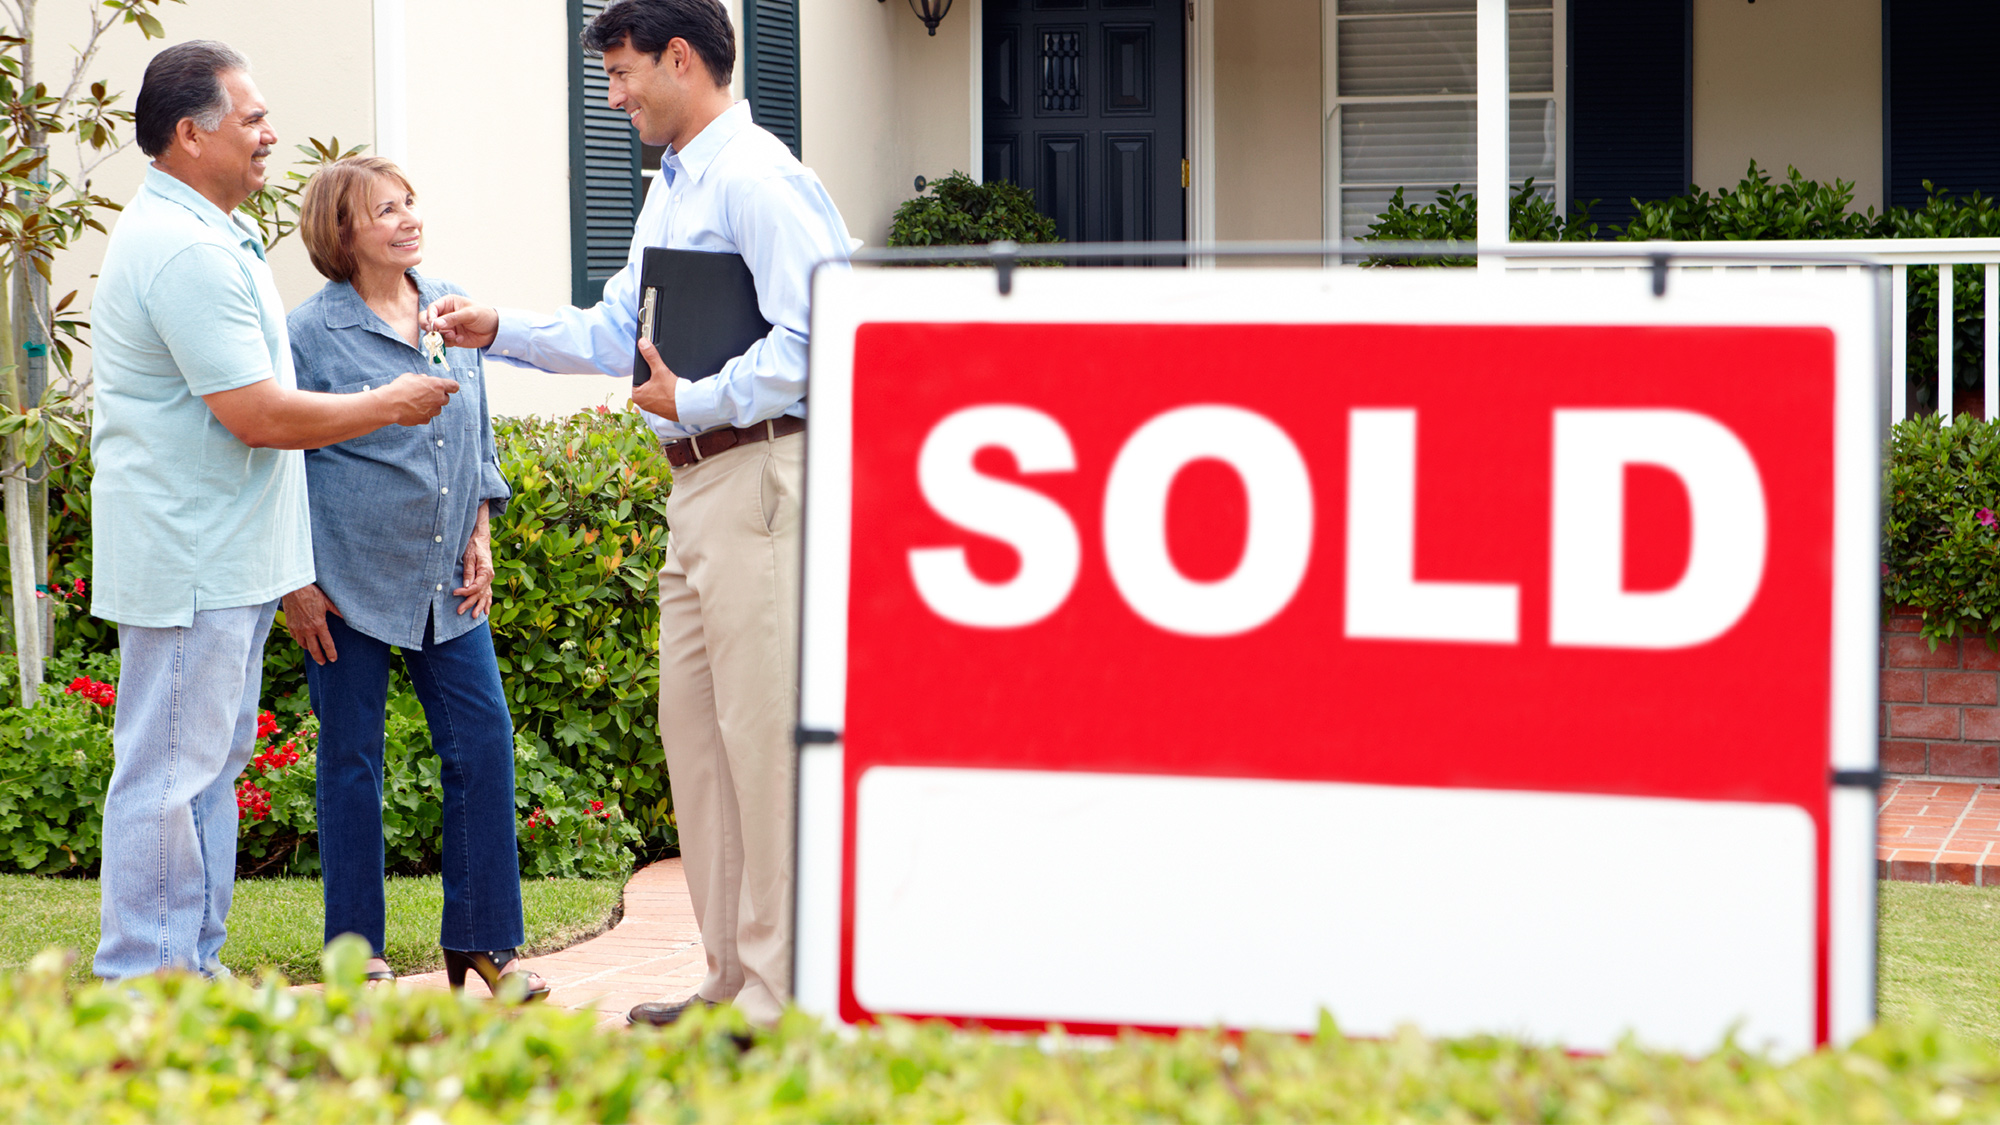 Buying property gets tougher in Canada for New Immigrants